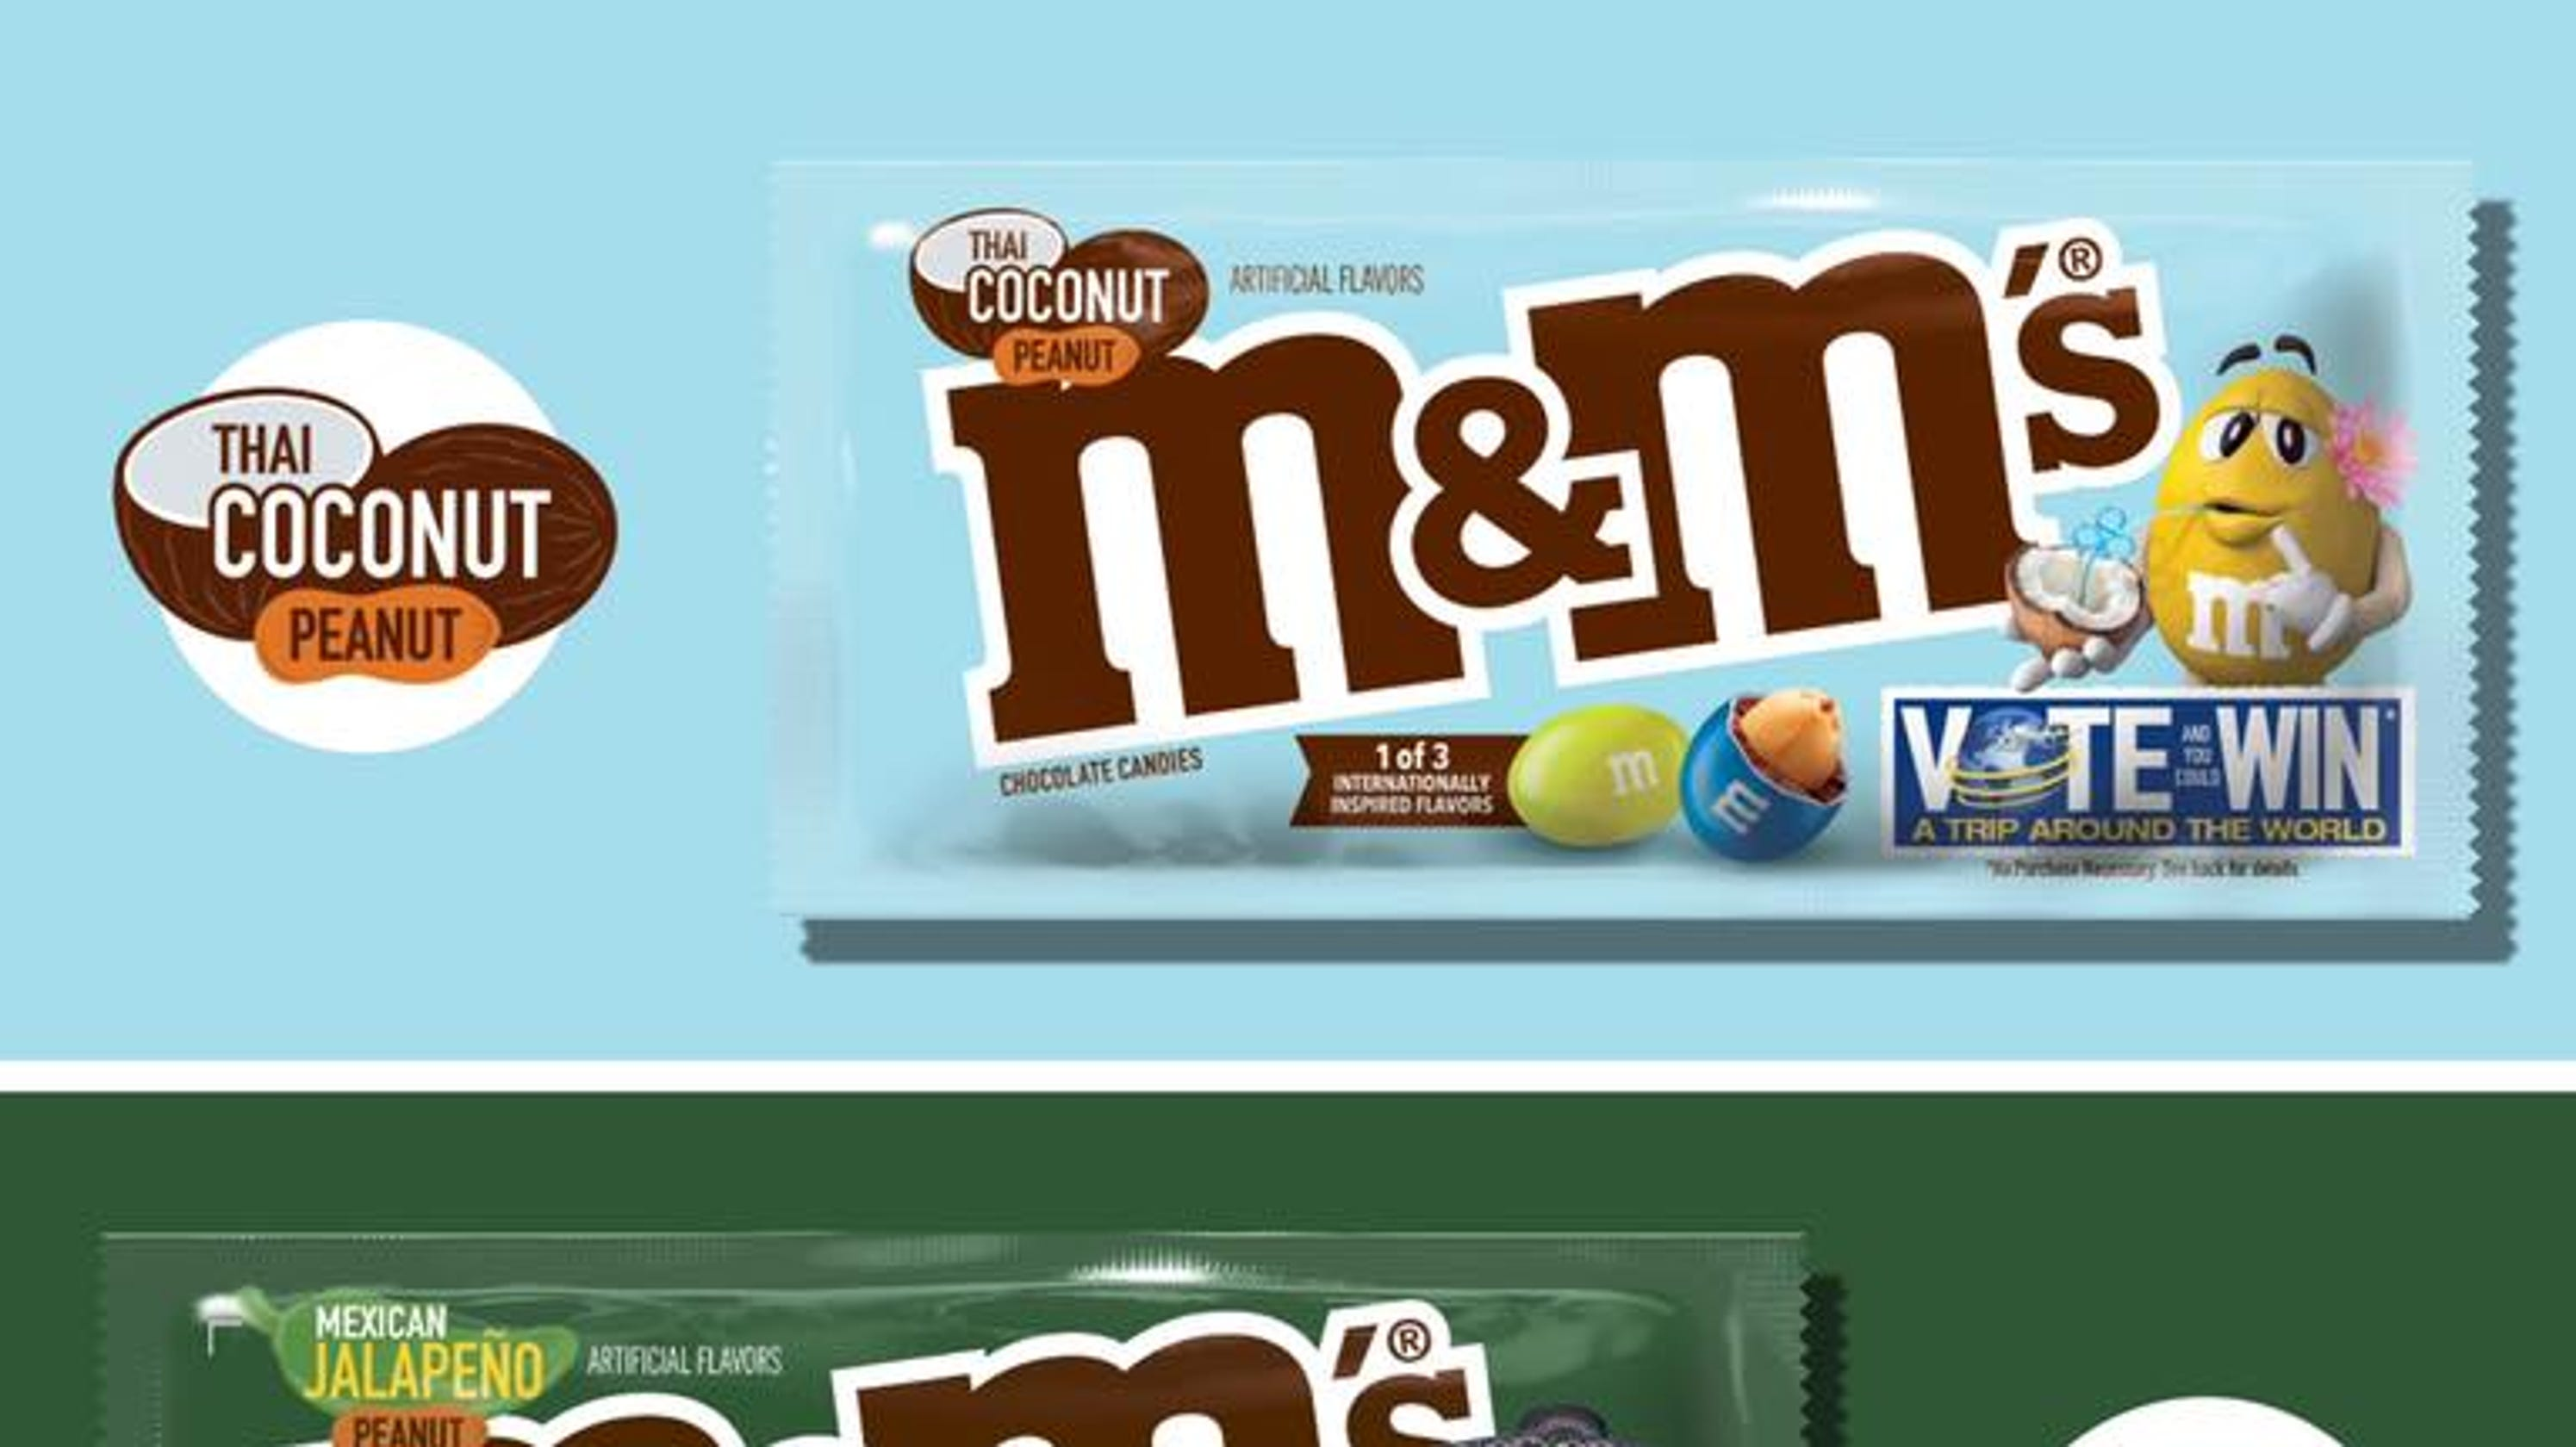 Mms 3 New Peanut Based Flavors Are Here Toffee Jalapeno Coconut